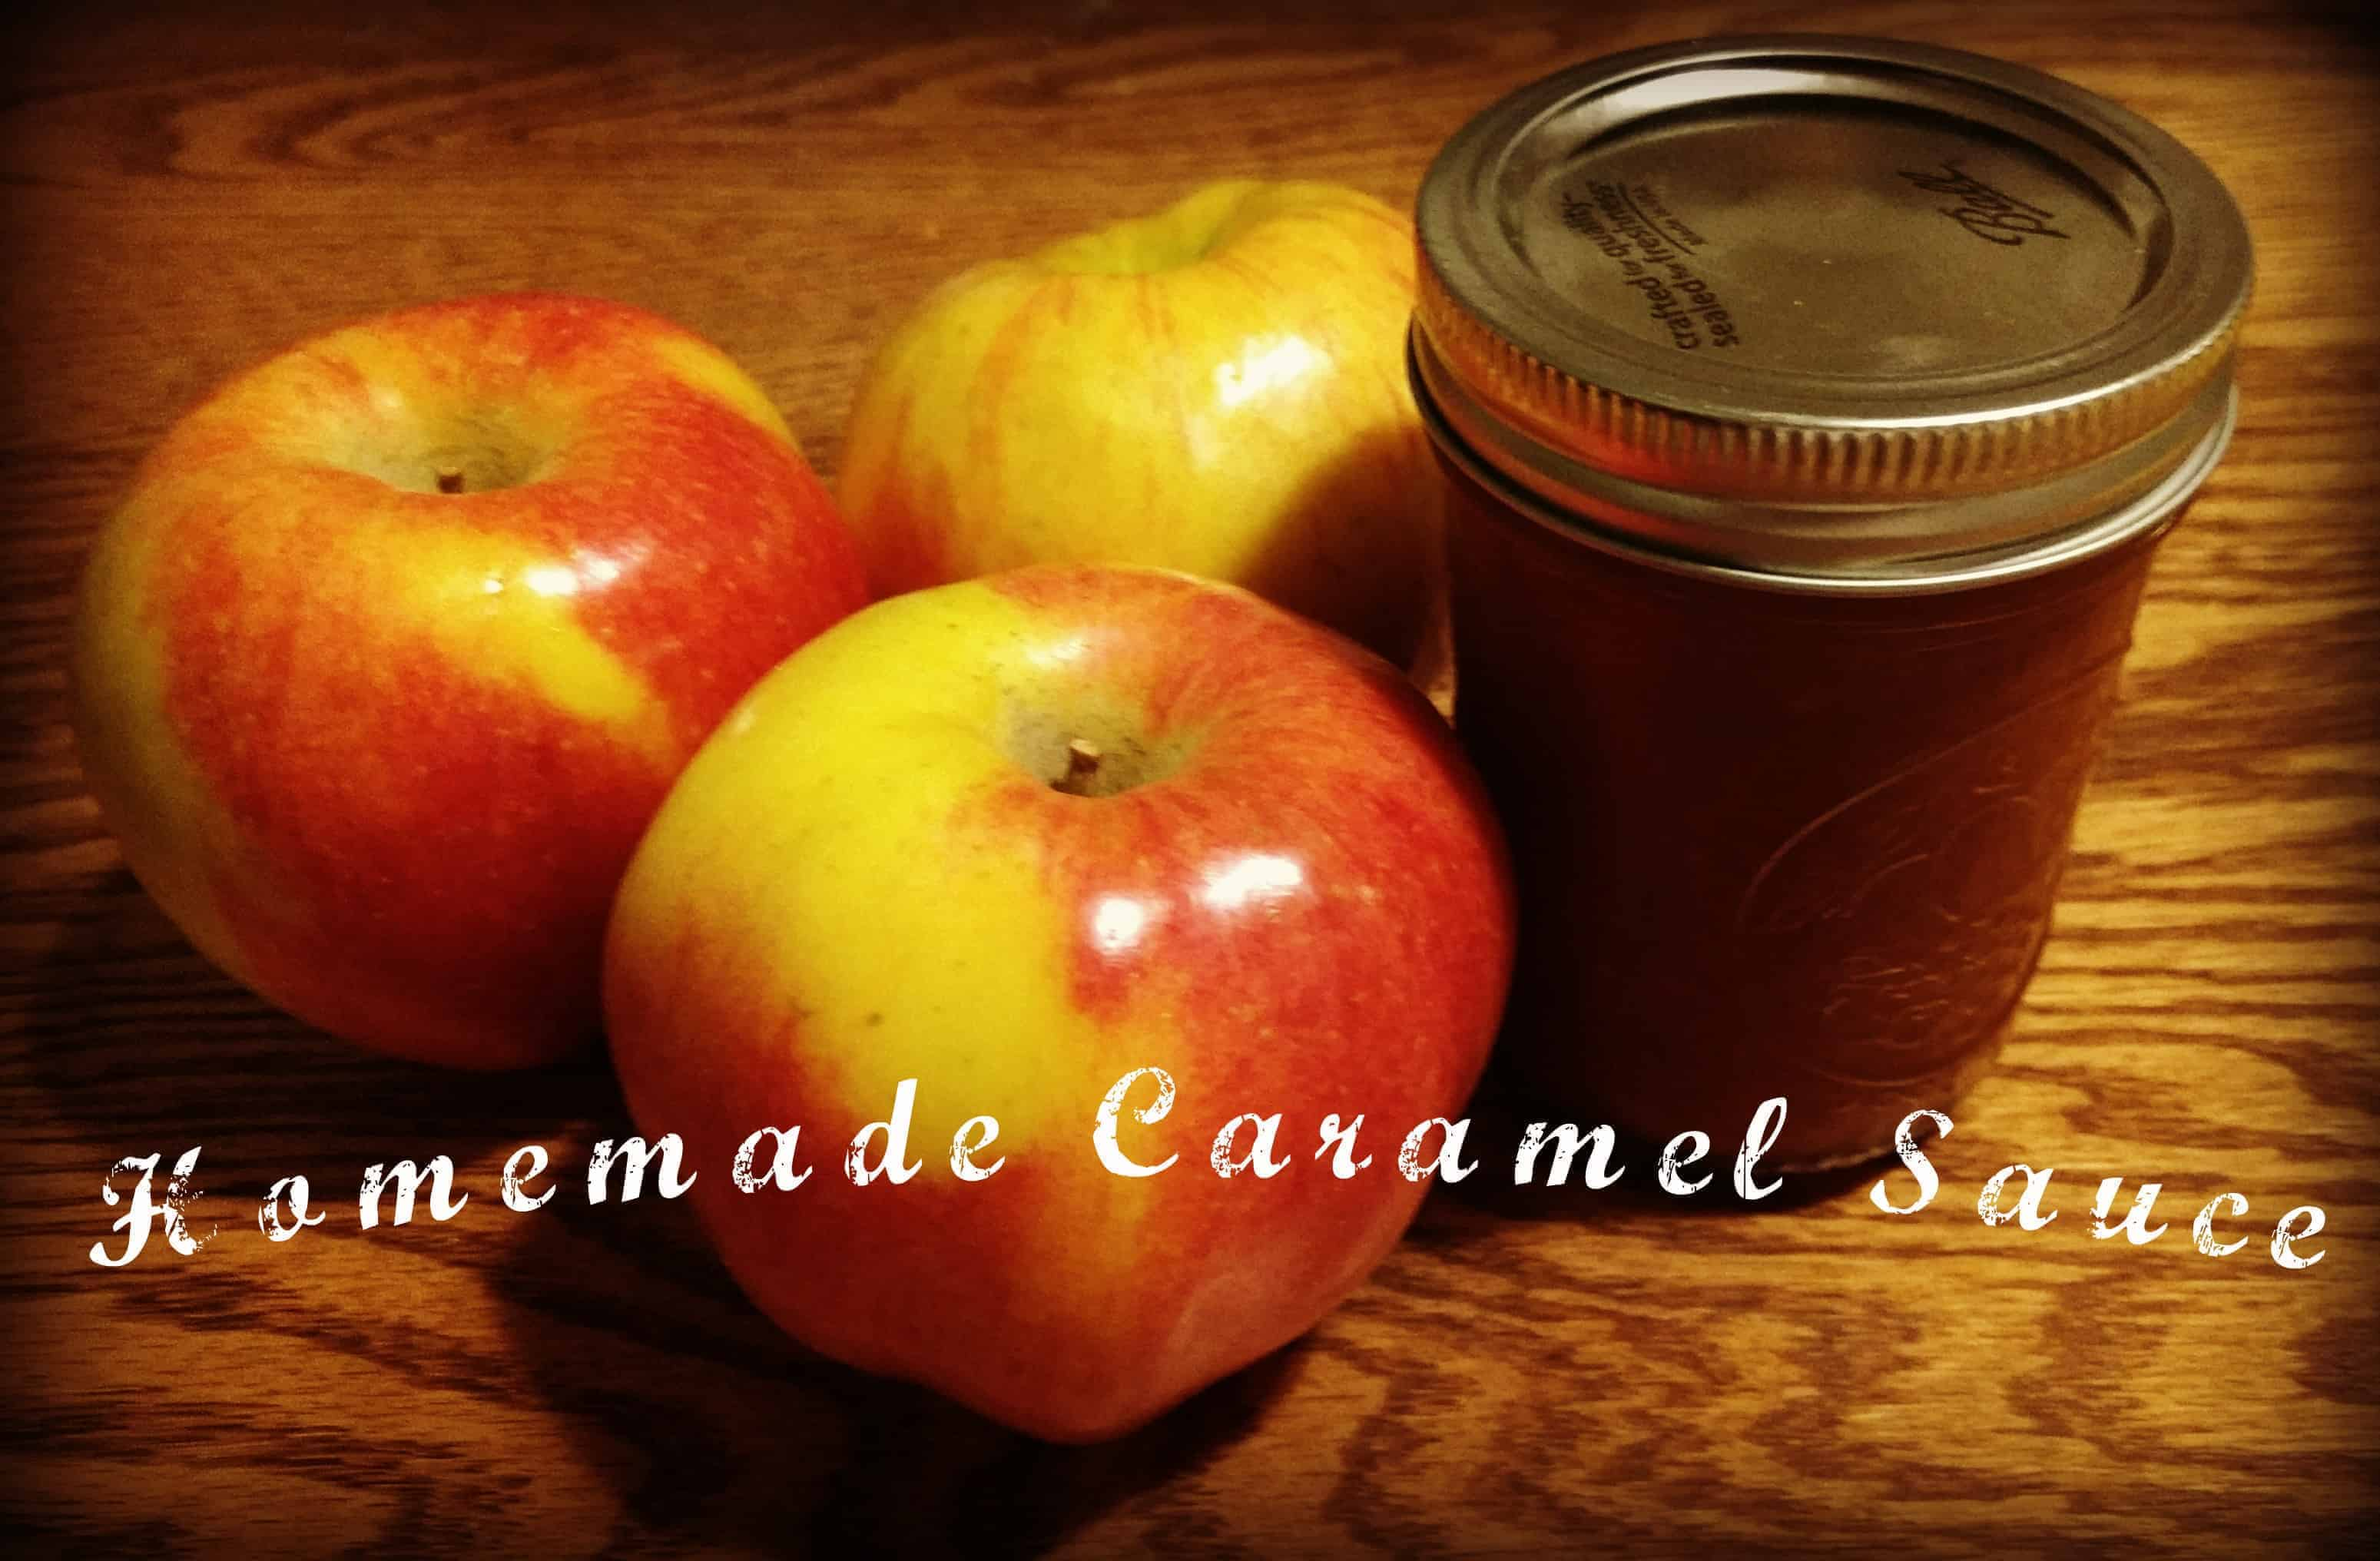 Make and Jar Your Own Caramel Sauce